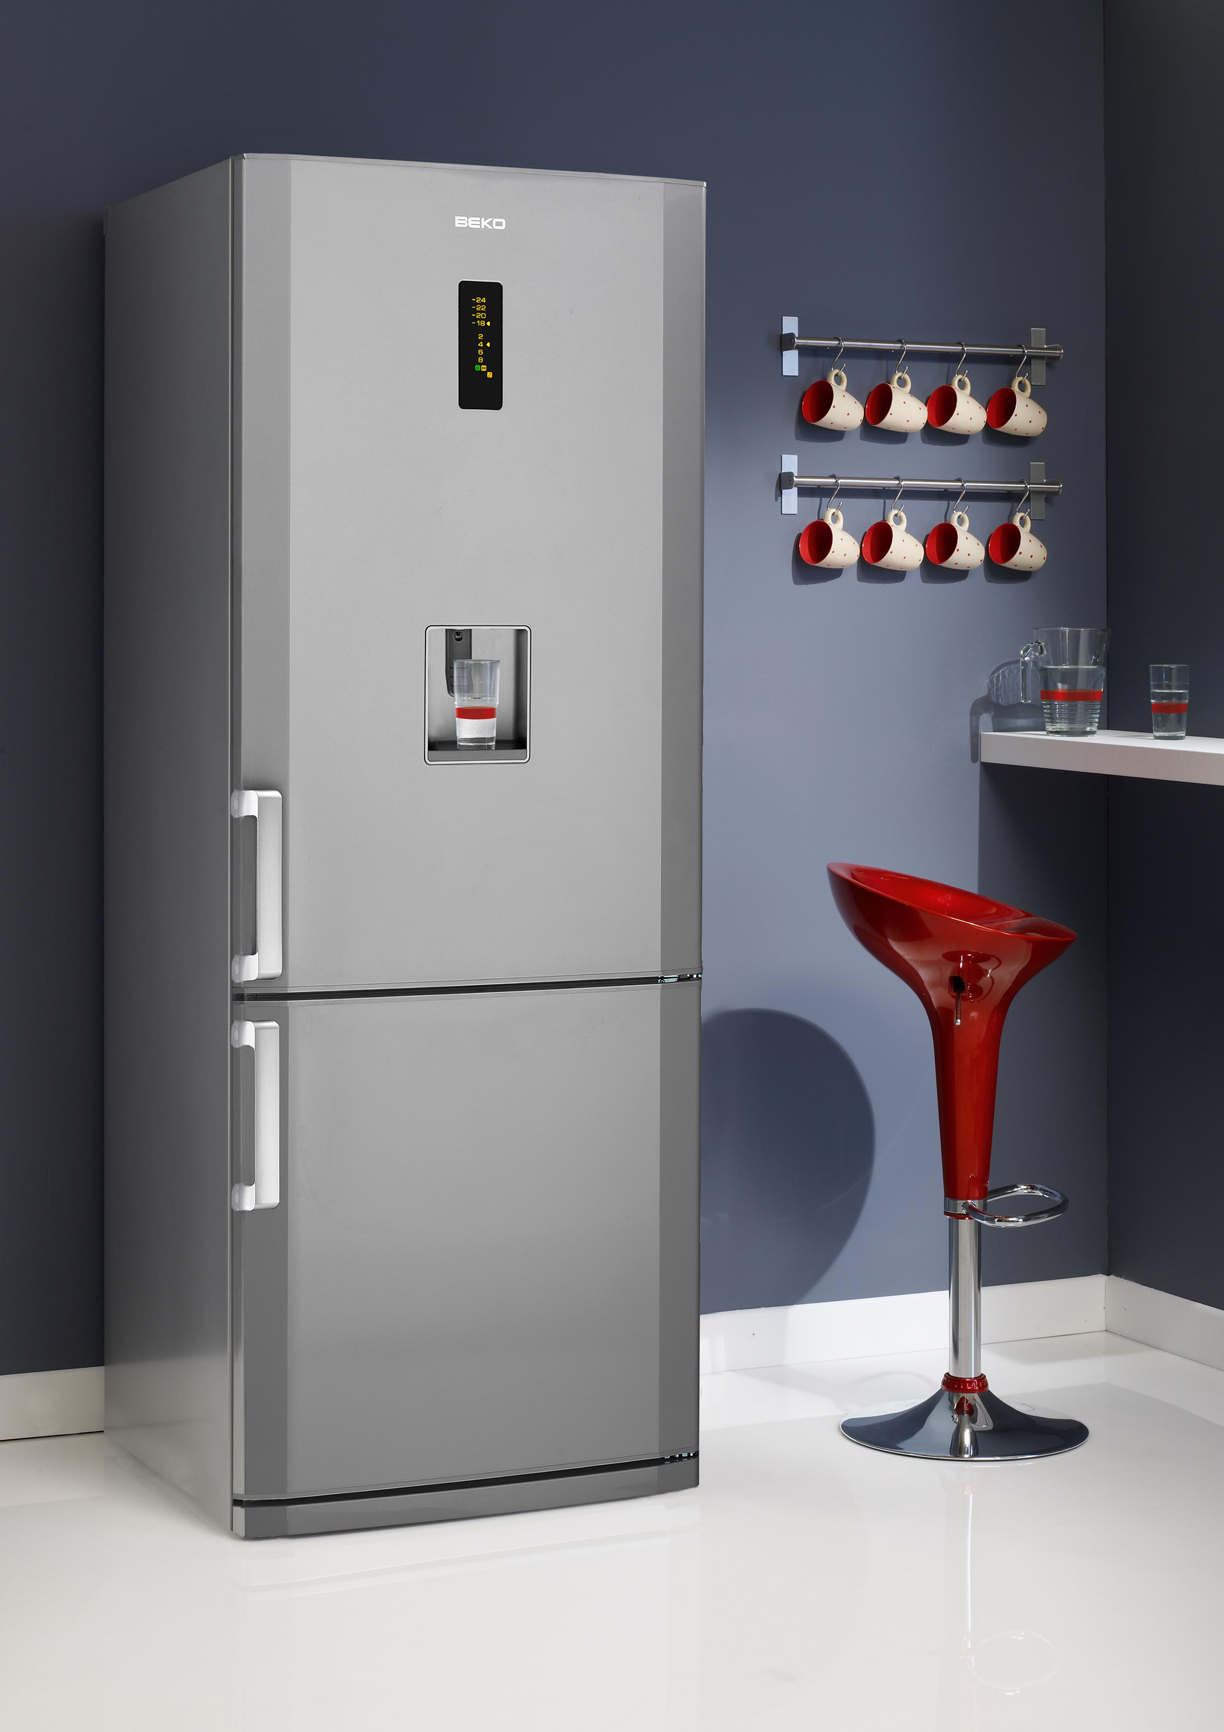 BEKO 70cm Stainless Steel Fridge.jpg